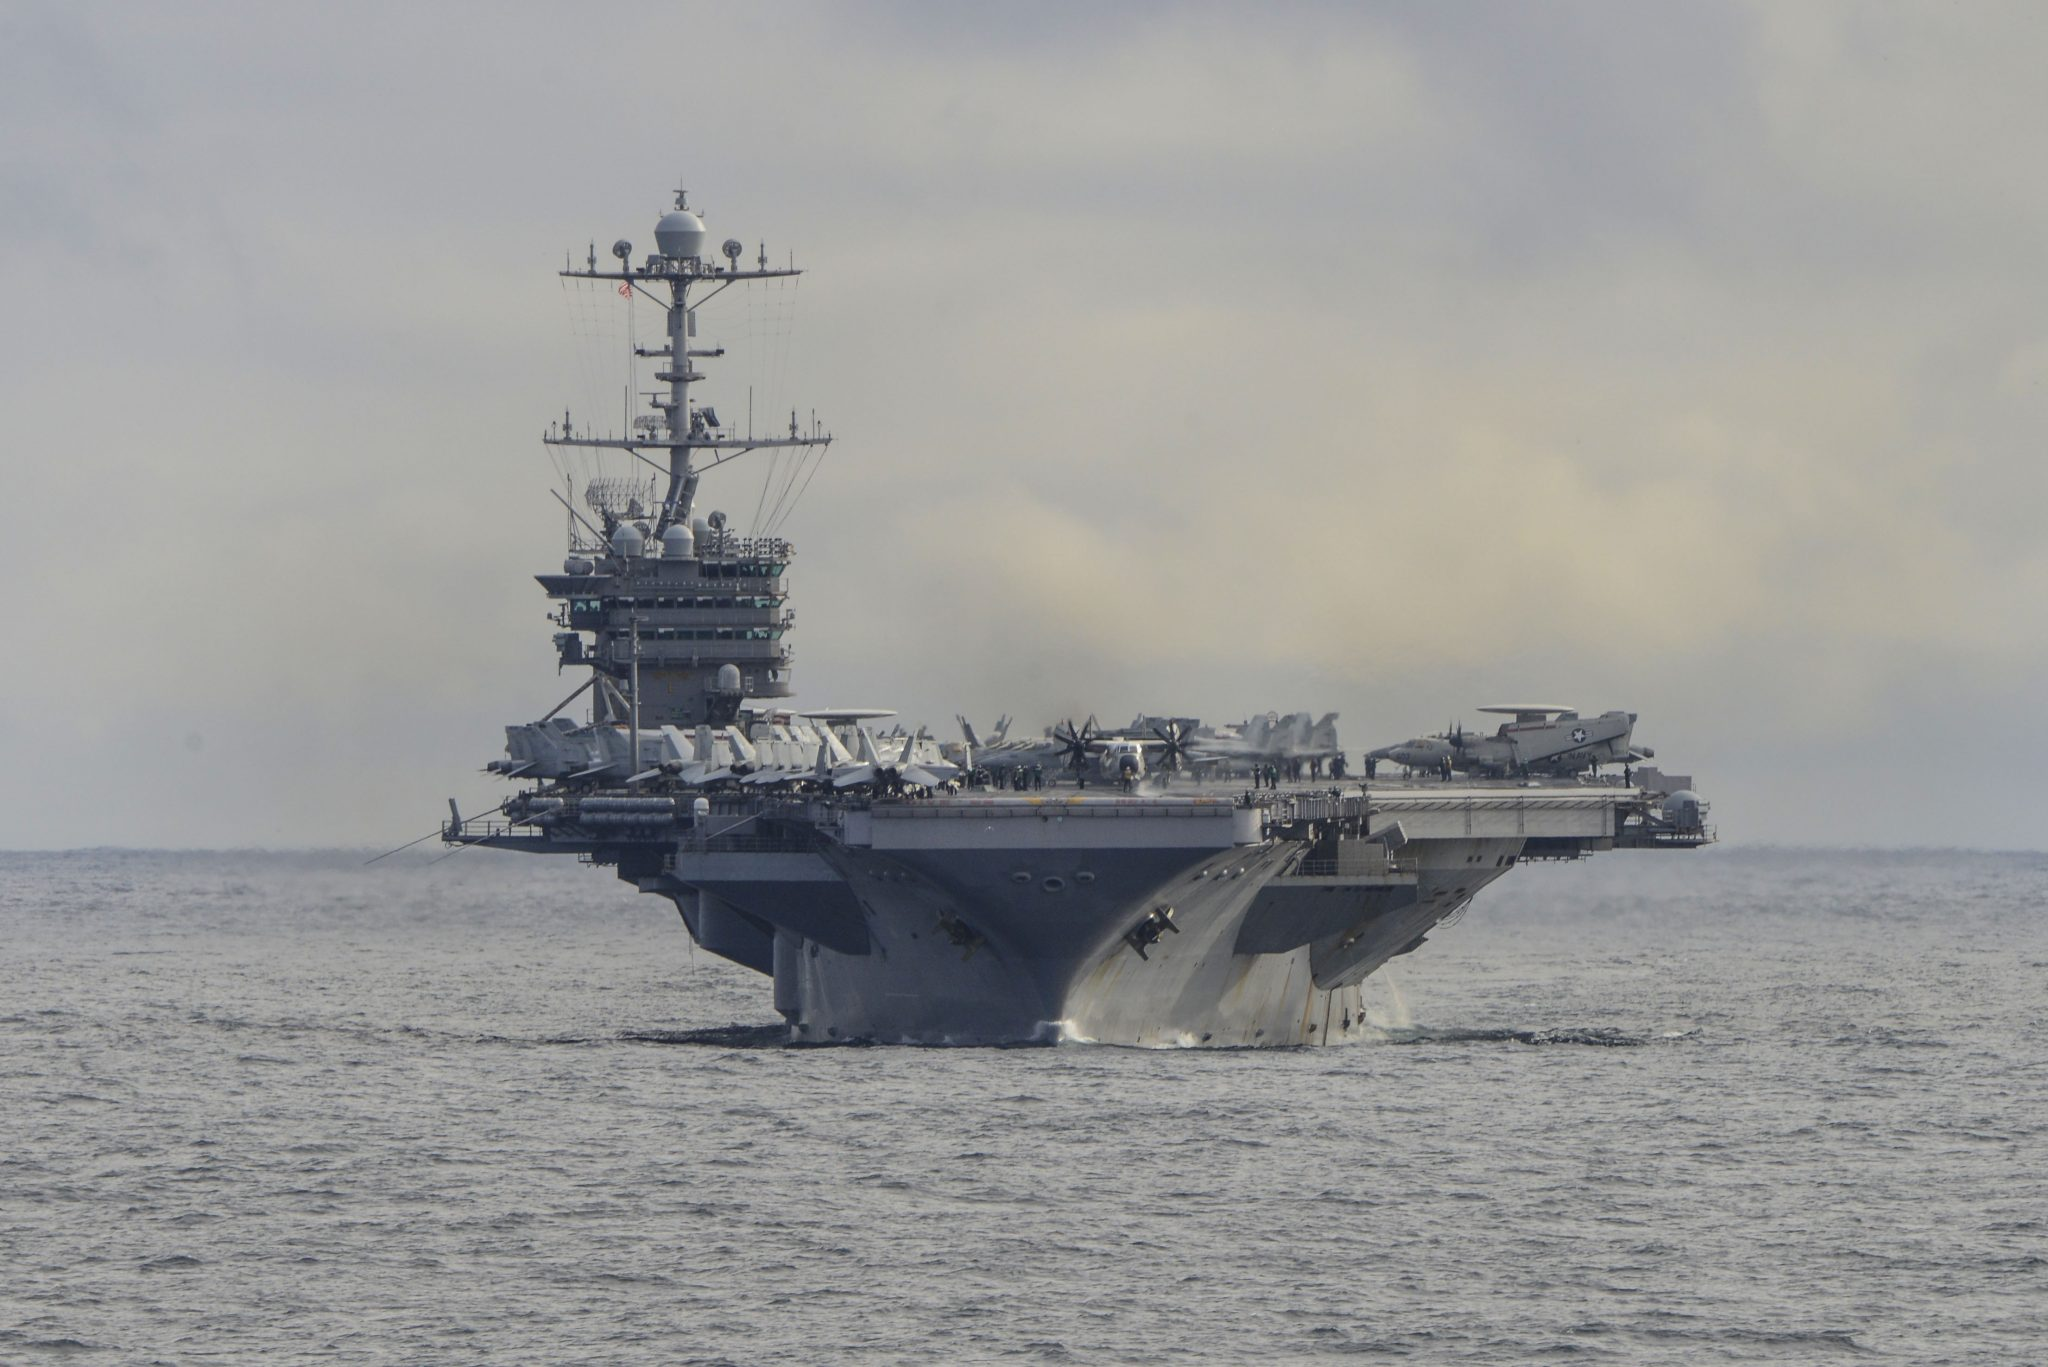 The USS Harry S. Truman (CVN 75). Photo via the U.S. Navy/ Michael Chen.